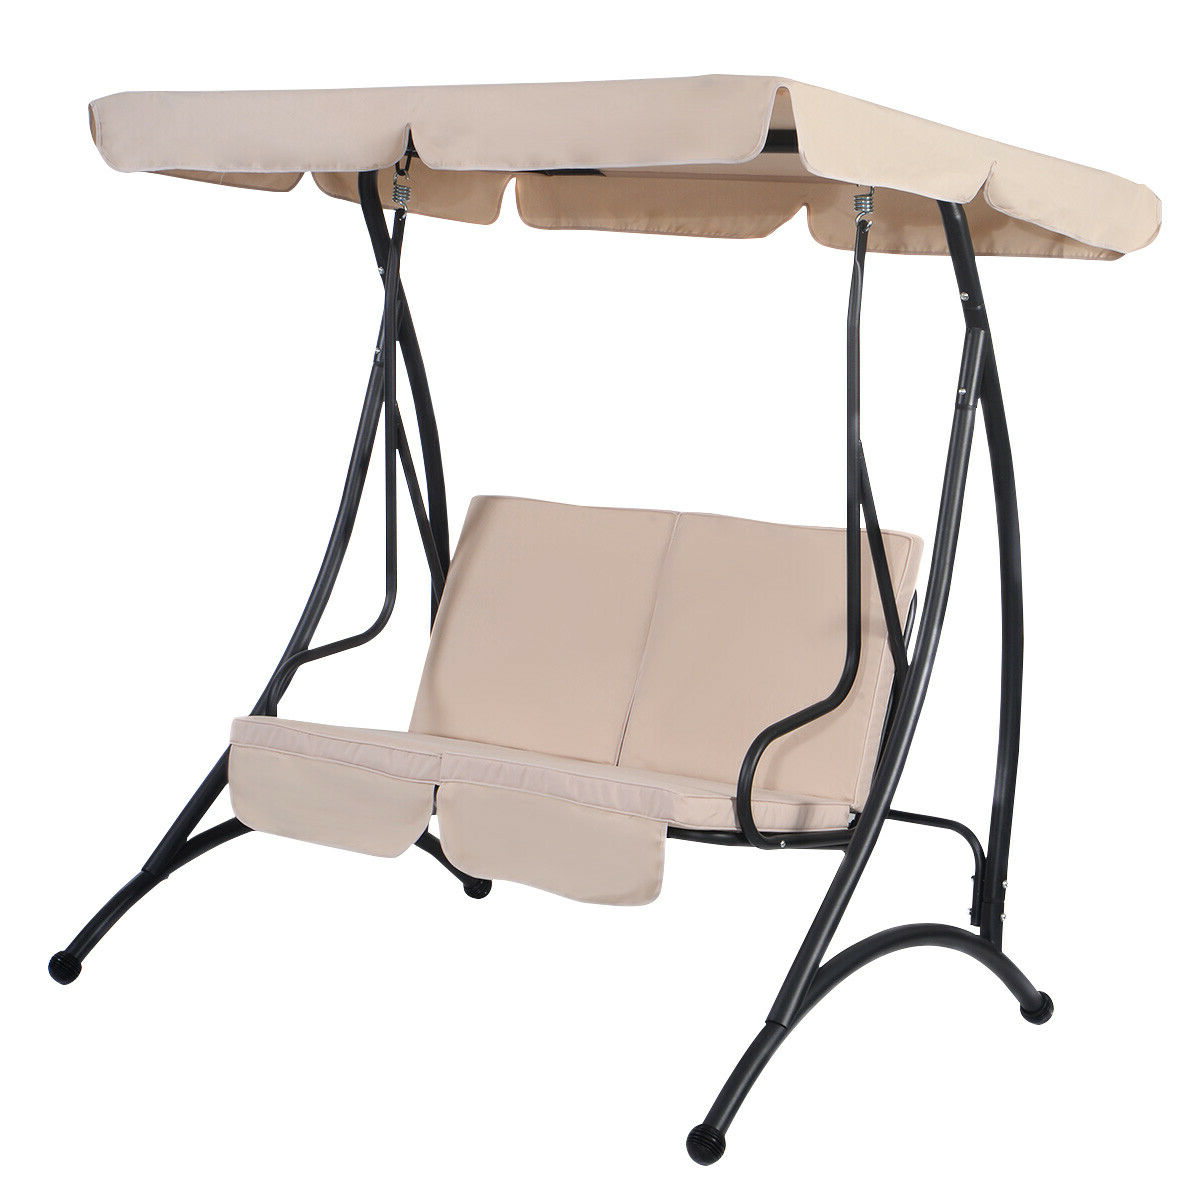 2 Person Black Steel Outdoor Swings With Regard To Latest Costway: Costway Beige 2 Person Canopy Swing Chair Patio (View 5 of 30)